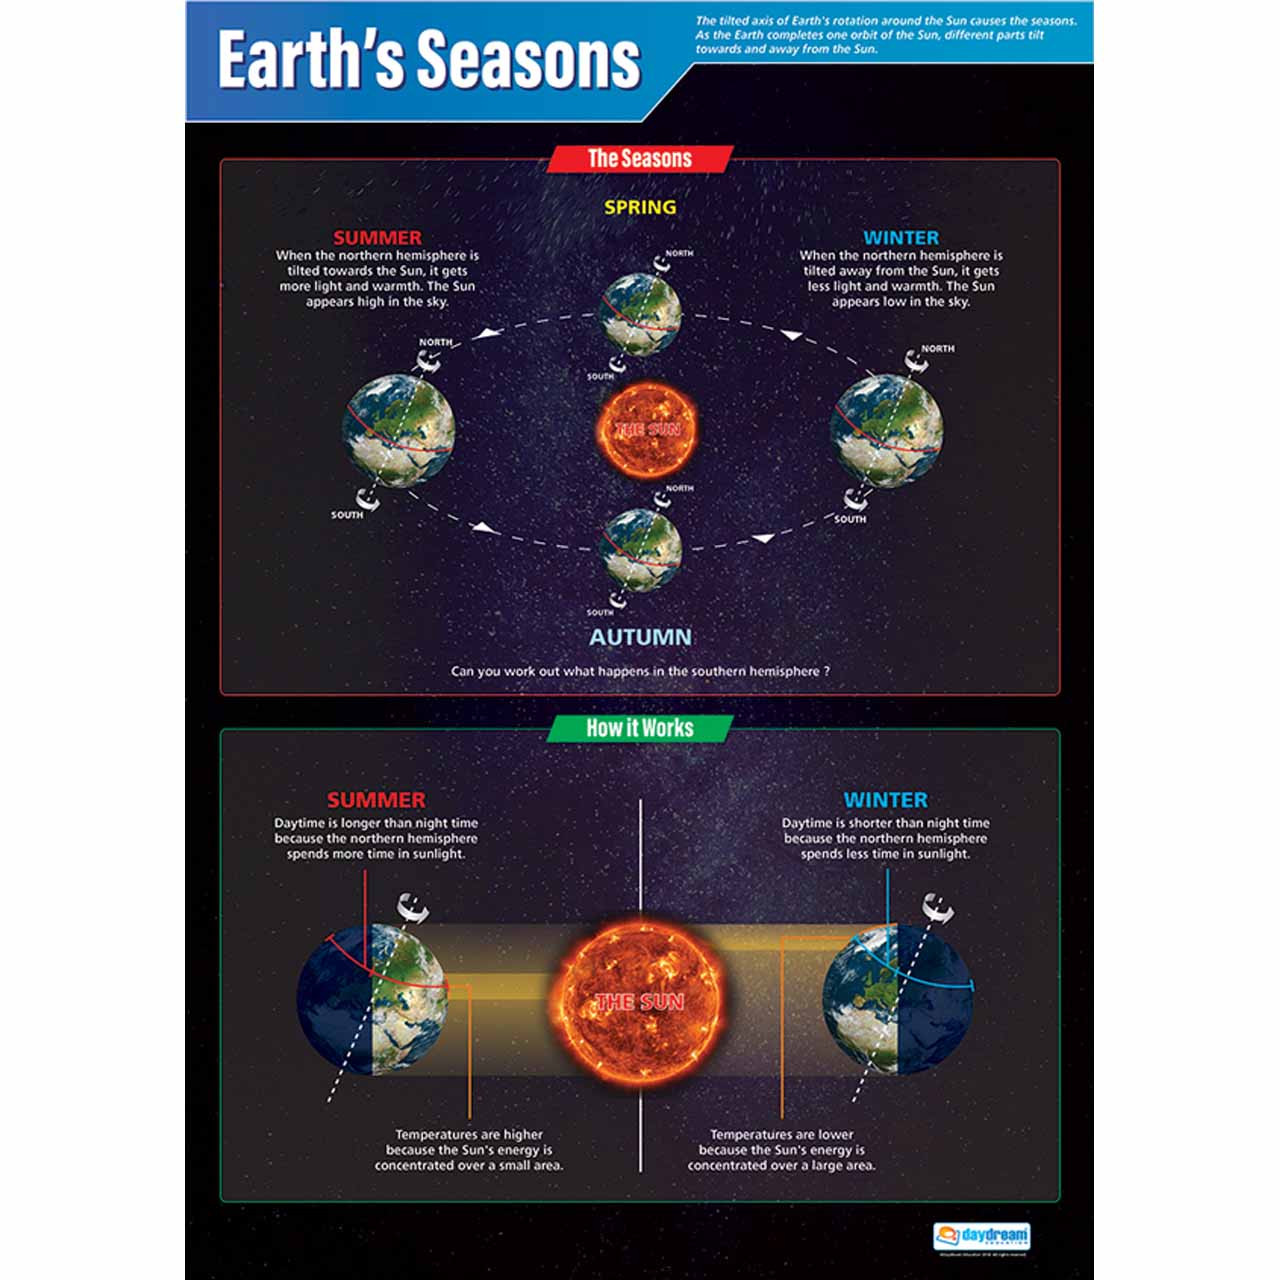 SC046L - Earth's Seasons Laminated